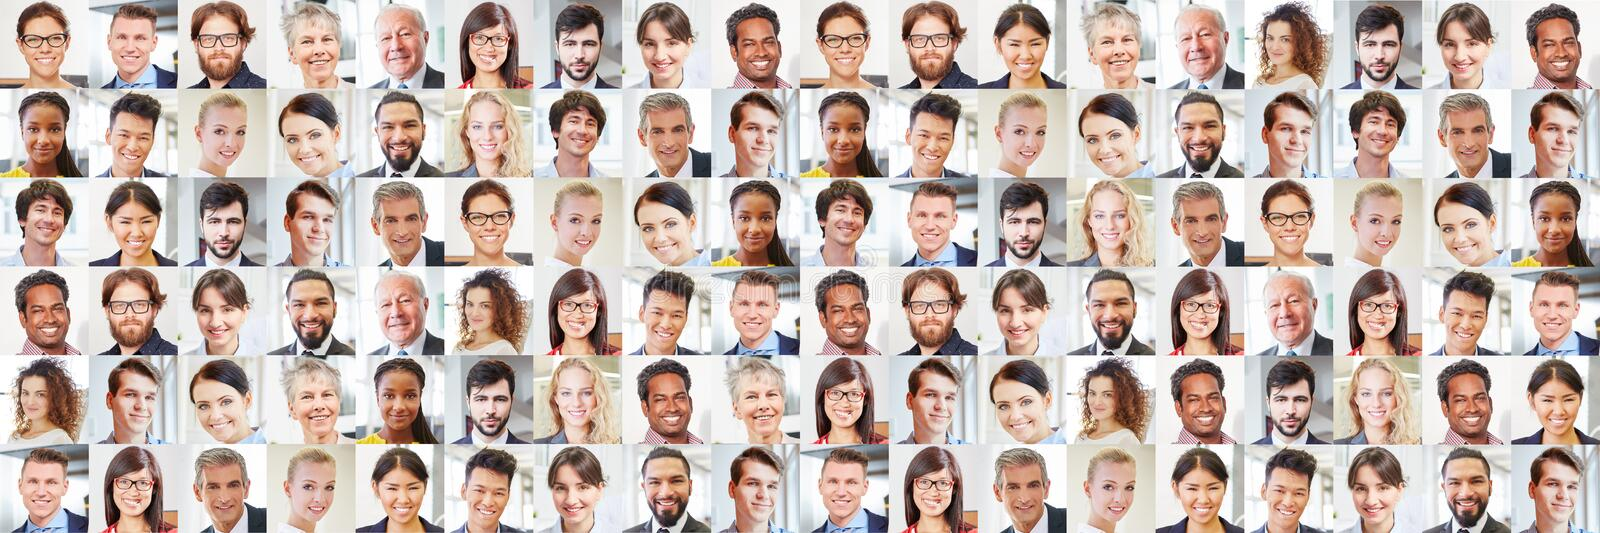 Many portraits of business people as international team stock photography